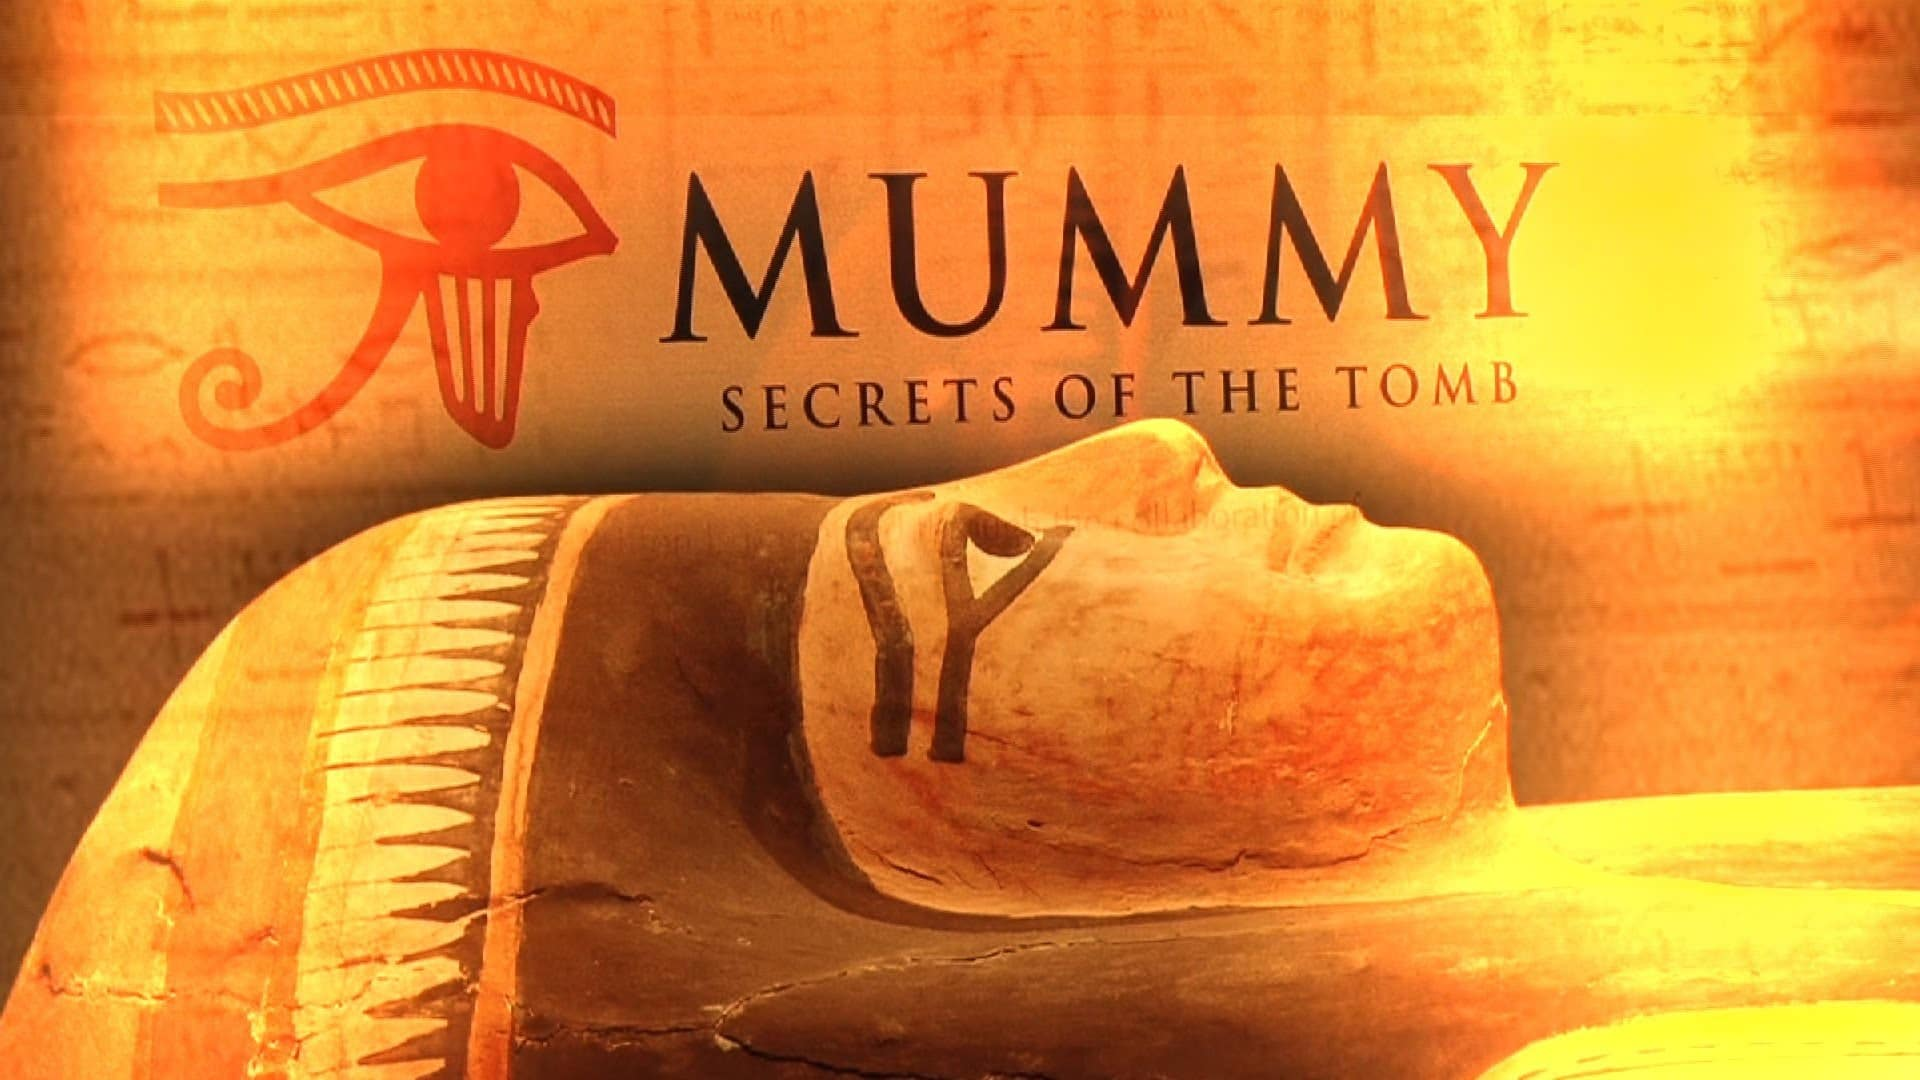 Mummy : Secrets of the Tomb Exhibition for the British Museum